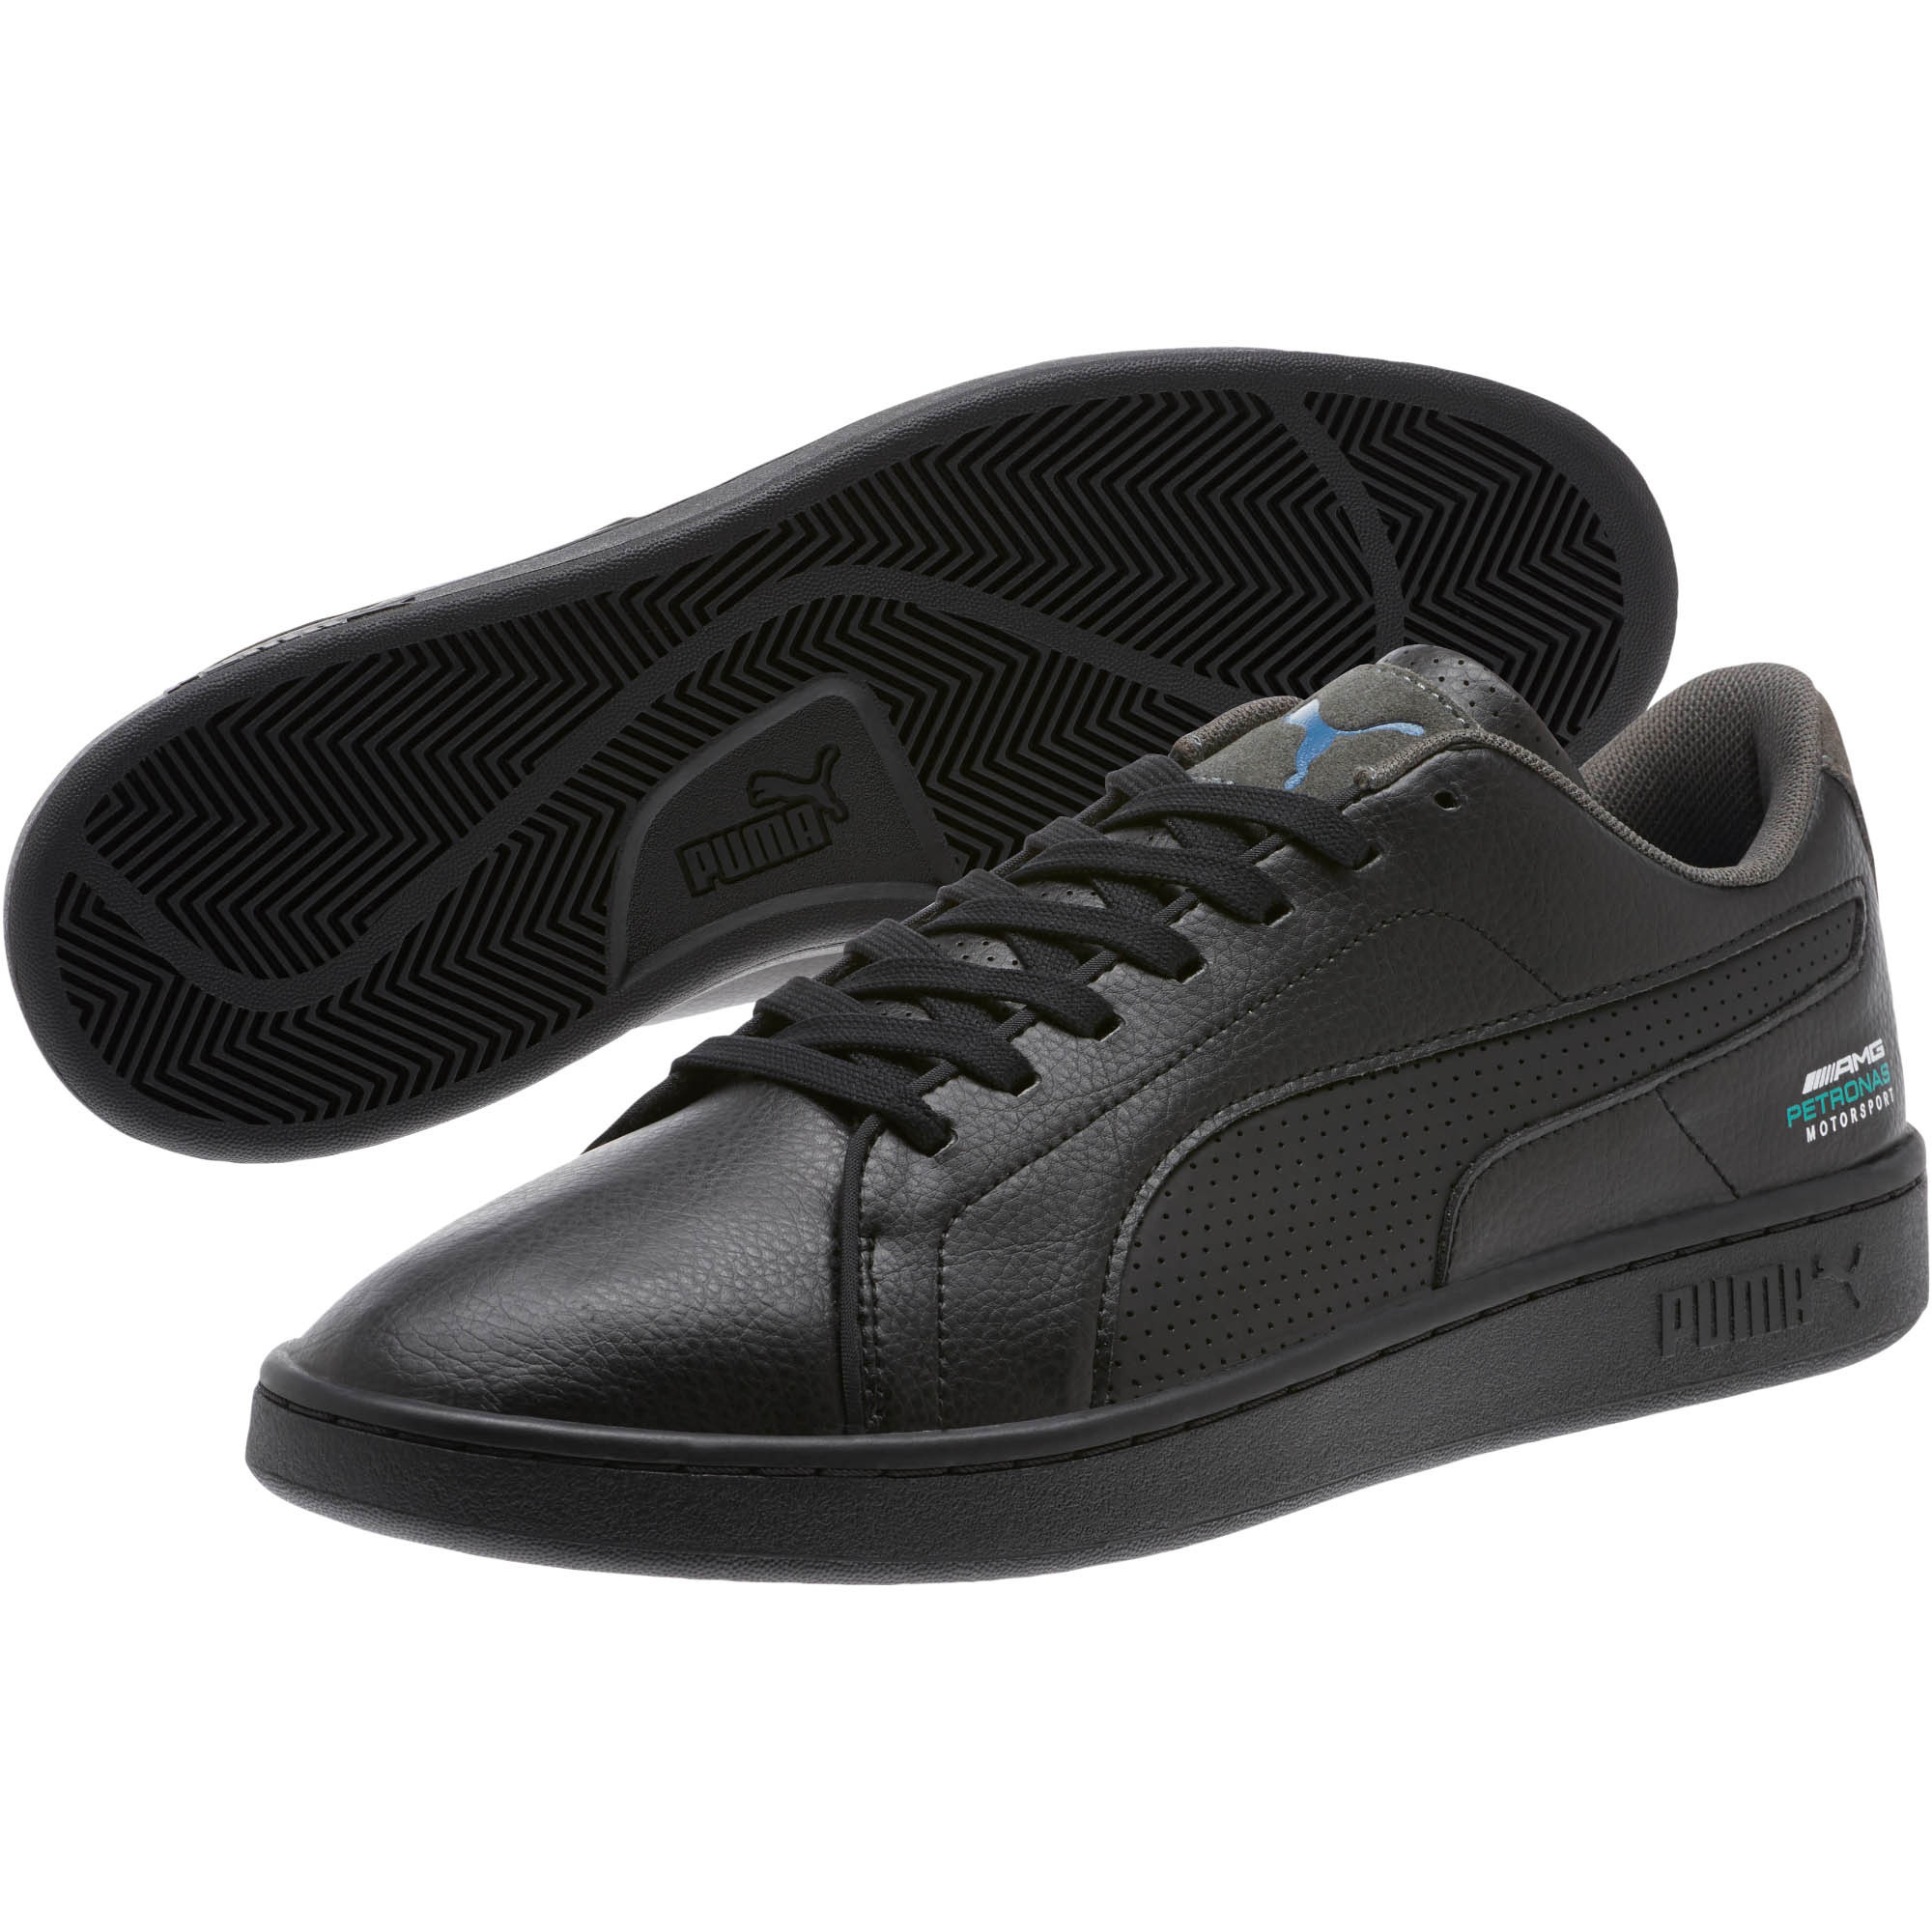 Details about PUMA Mercedes AMG Petronas Smash v2 Men's Sneakers Men Shoe Auto